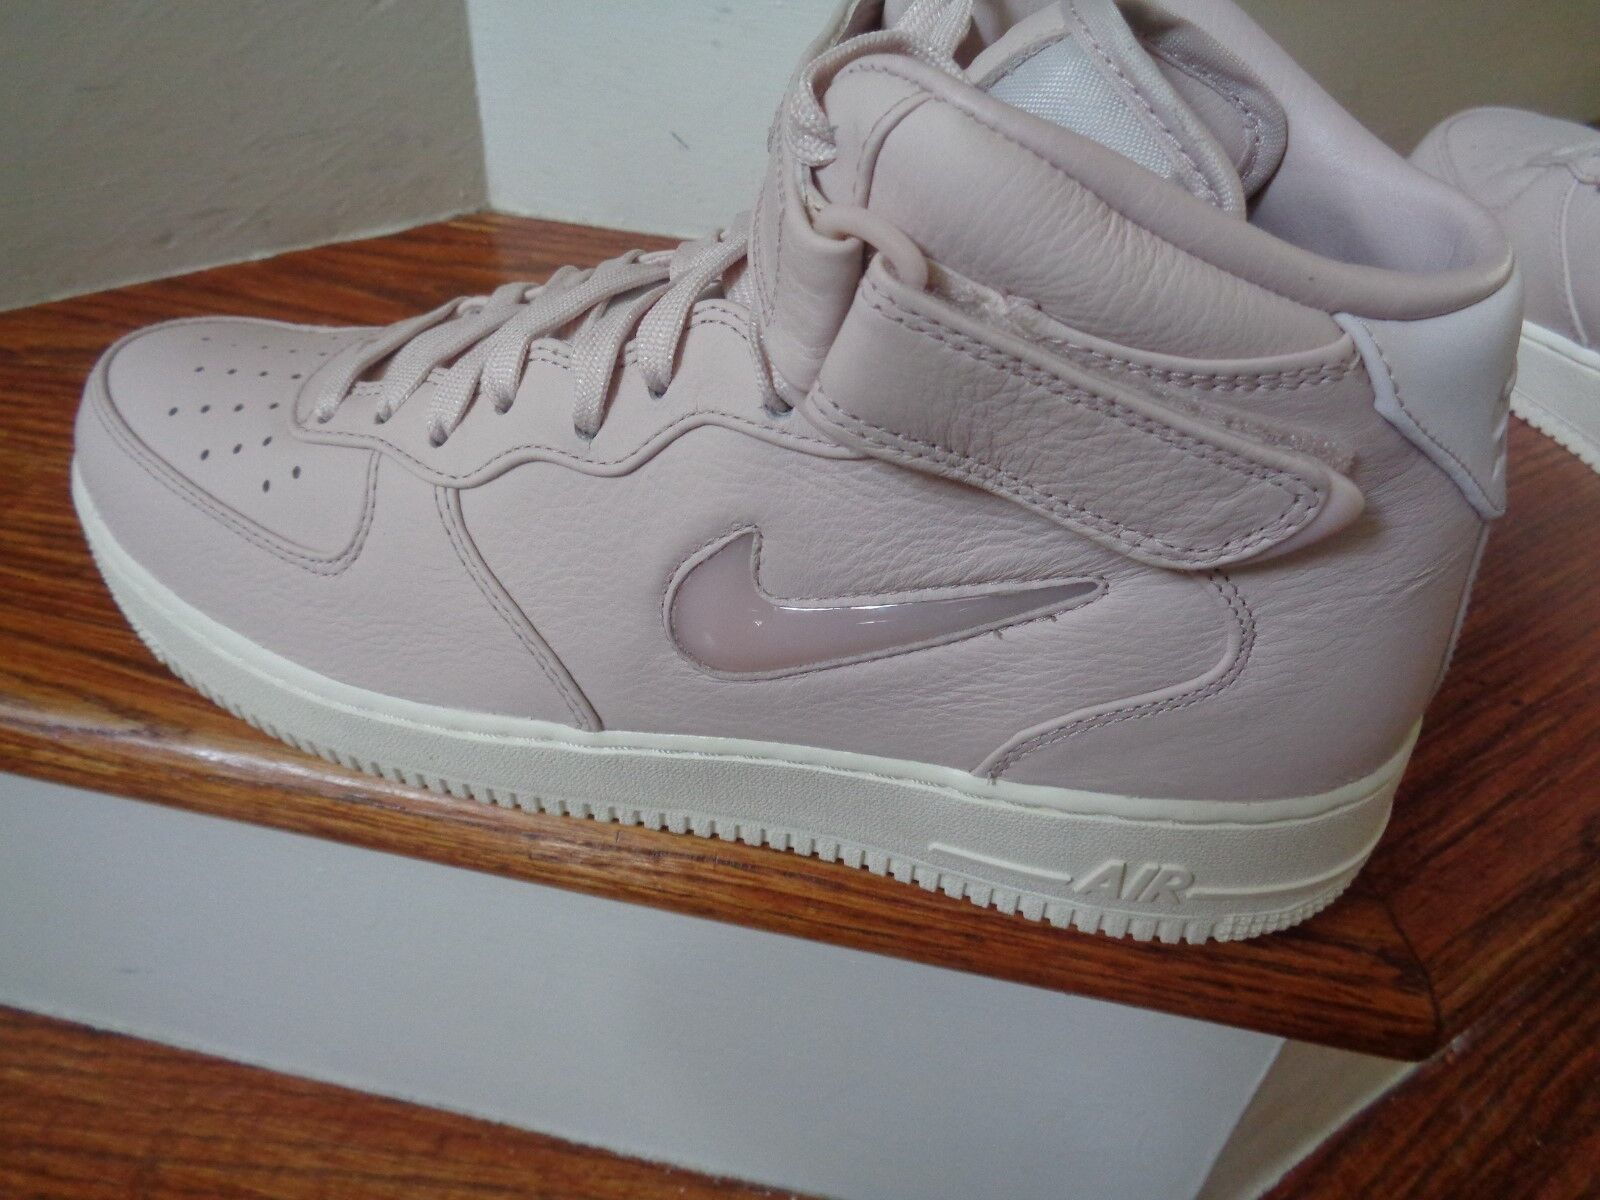 Nike Air Force 1 Mid Retro Premium Jewel Shoes, 941913 600 Size 8.5 NEW